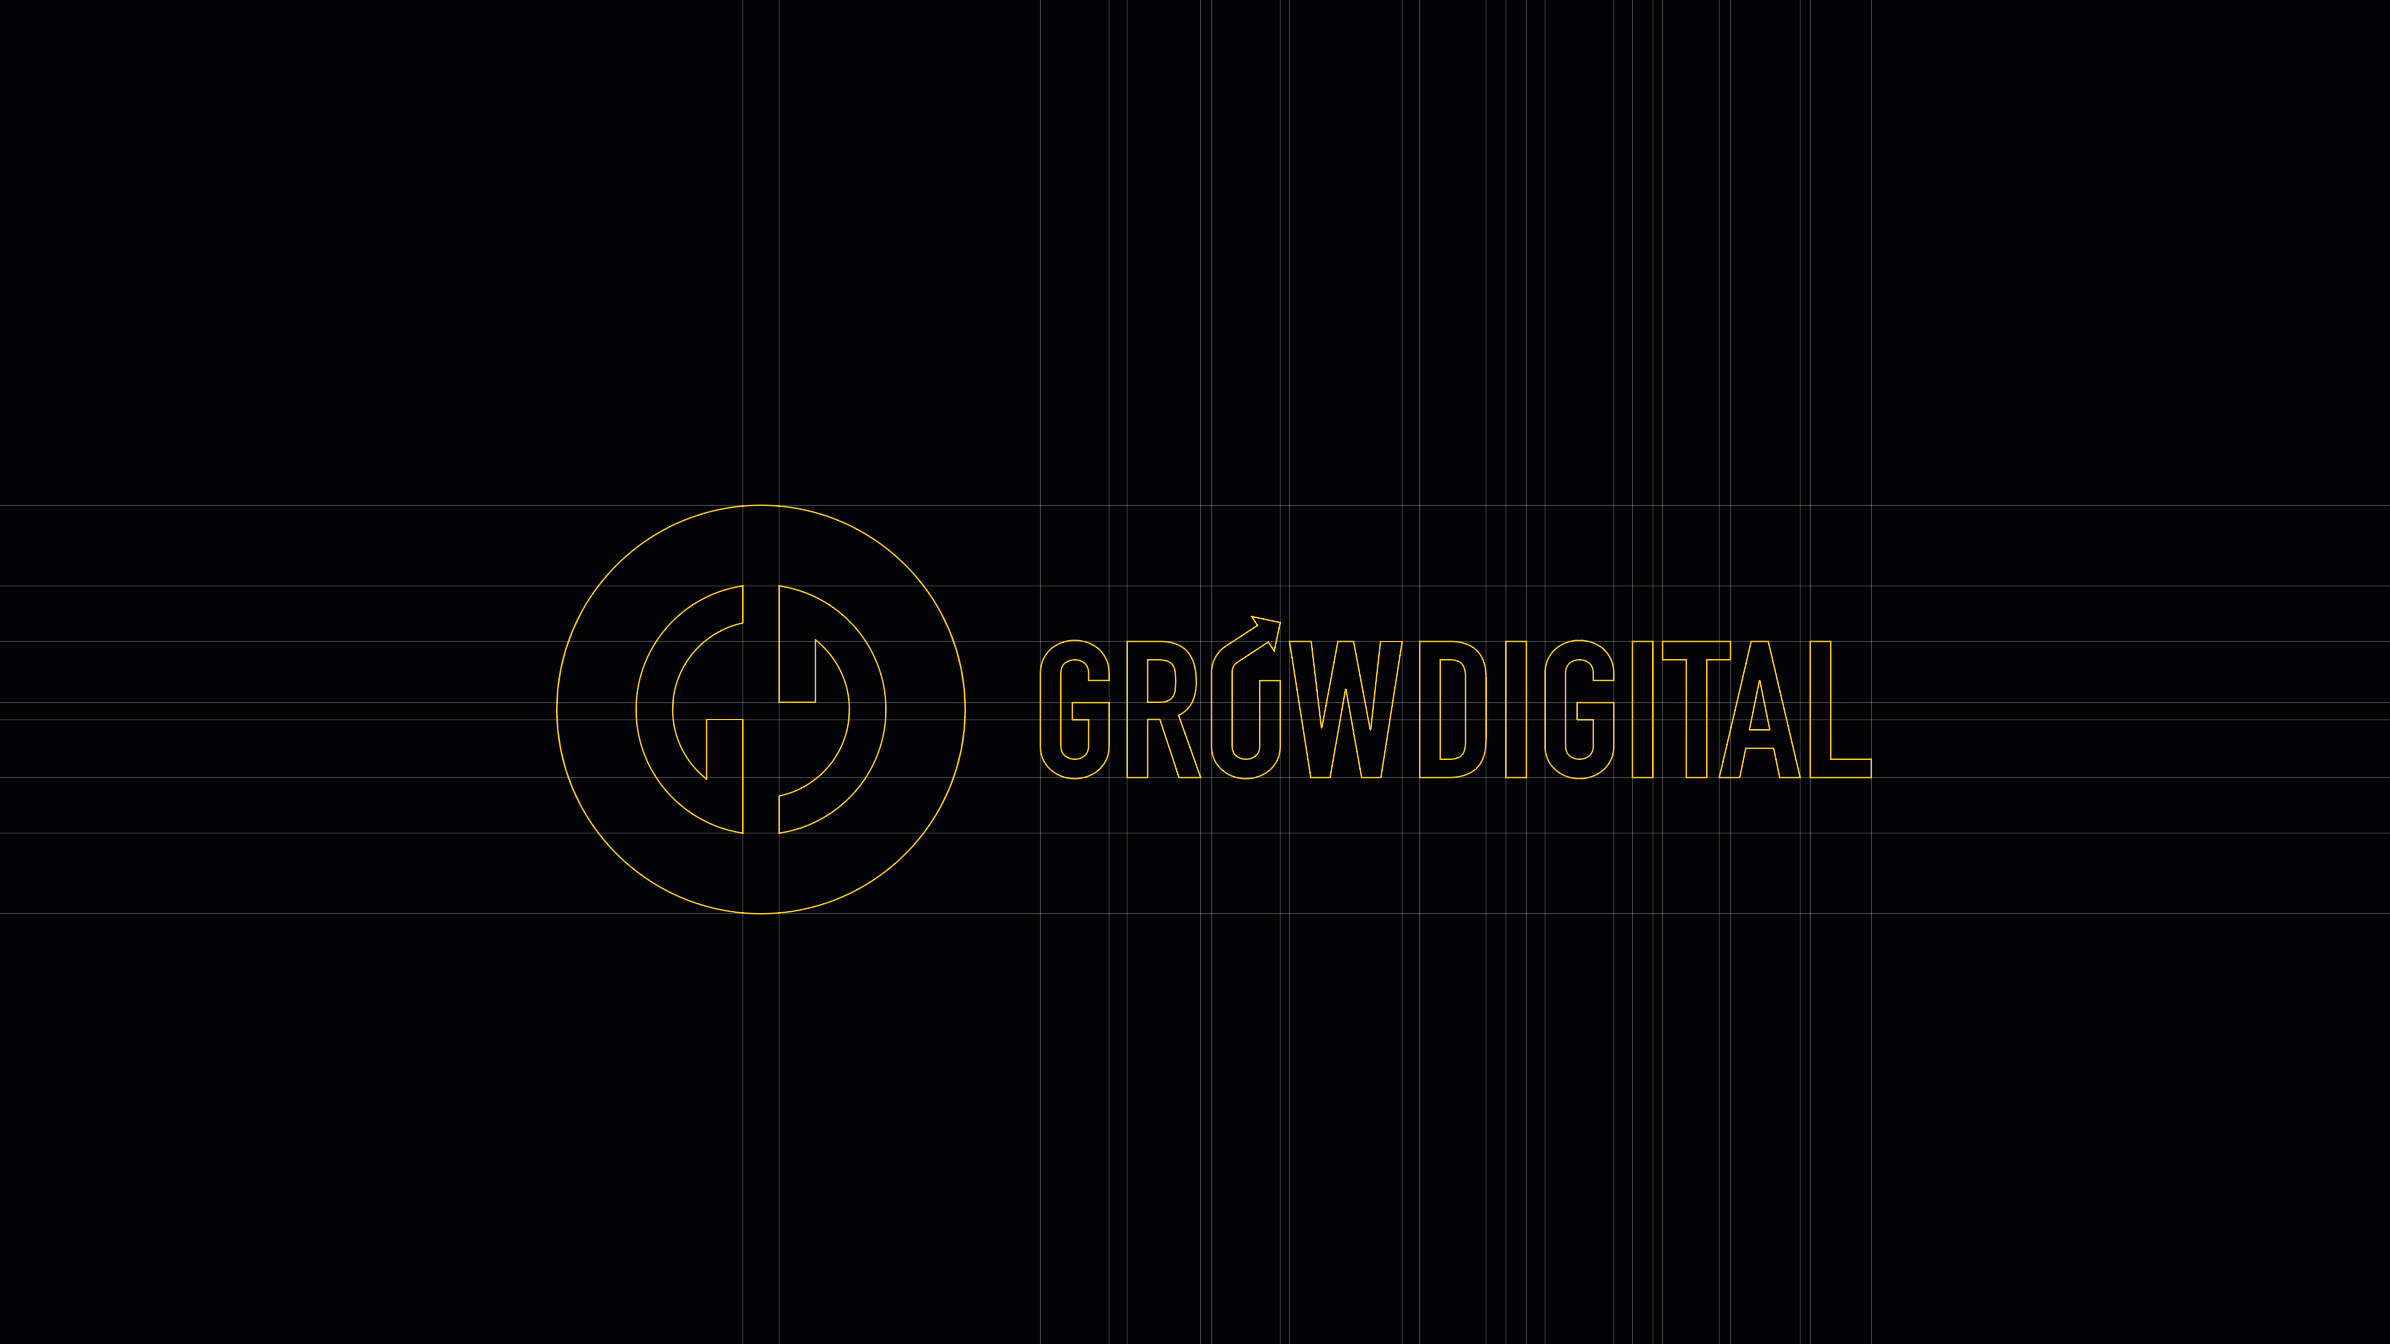 create-the-brand-case-growdigital2